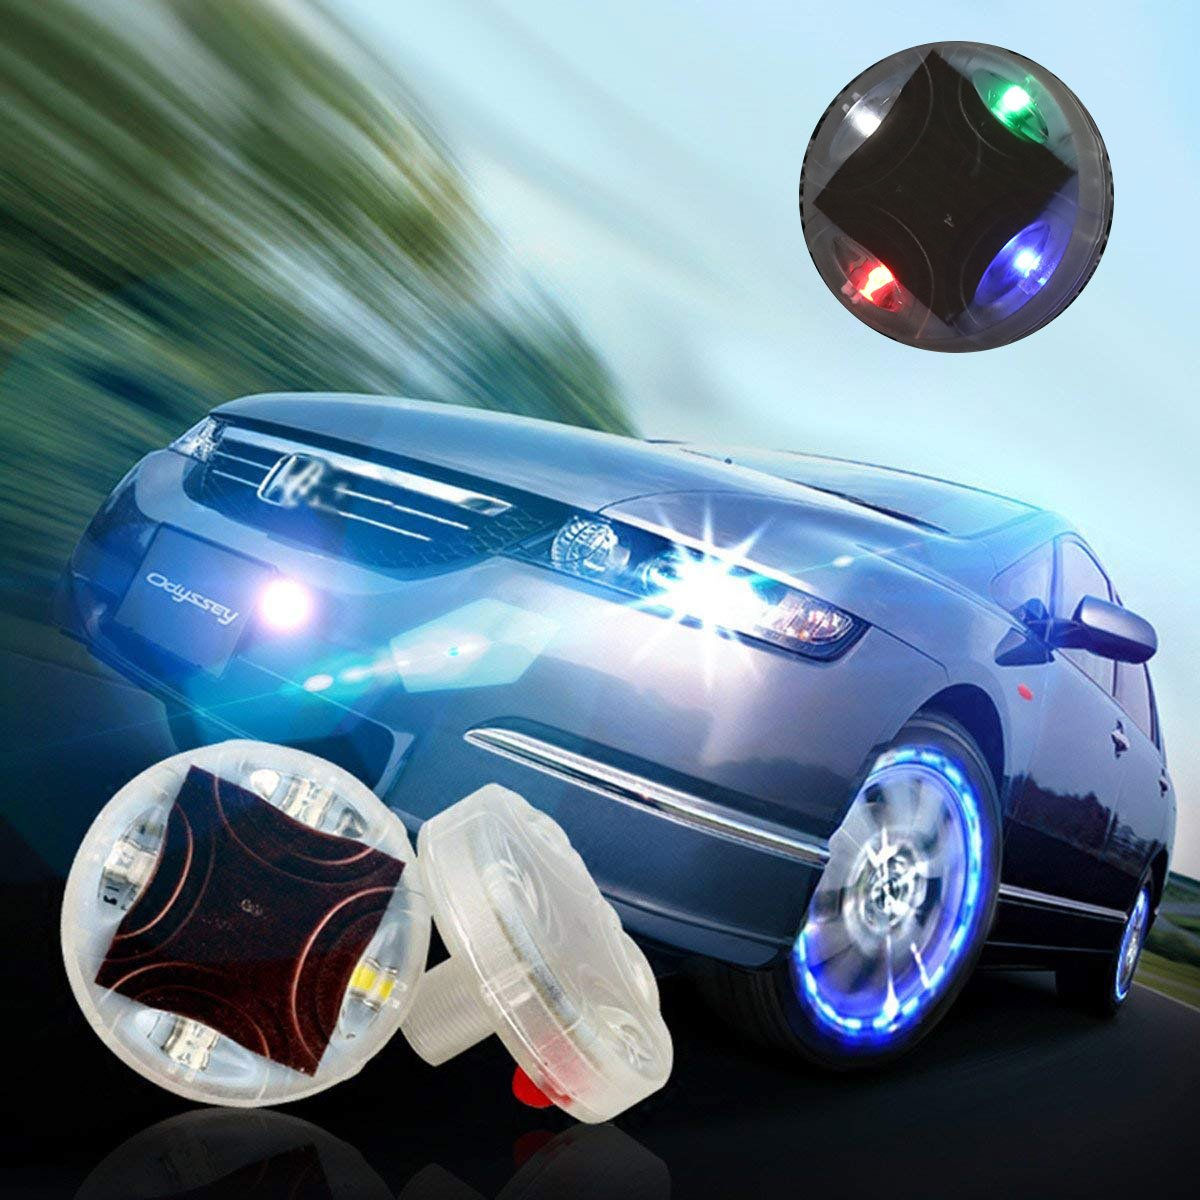 CHICTRY Set of 4 Car Tire Lights Solar Energy Wheel Hub Air Valve Cap Light Lamp Waterproof Decorative Colorful LED Light with 15 Flashing Modes for Auto Motorcycles Bicycles